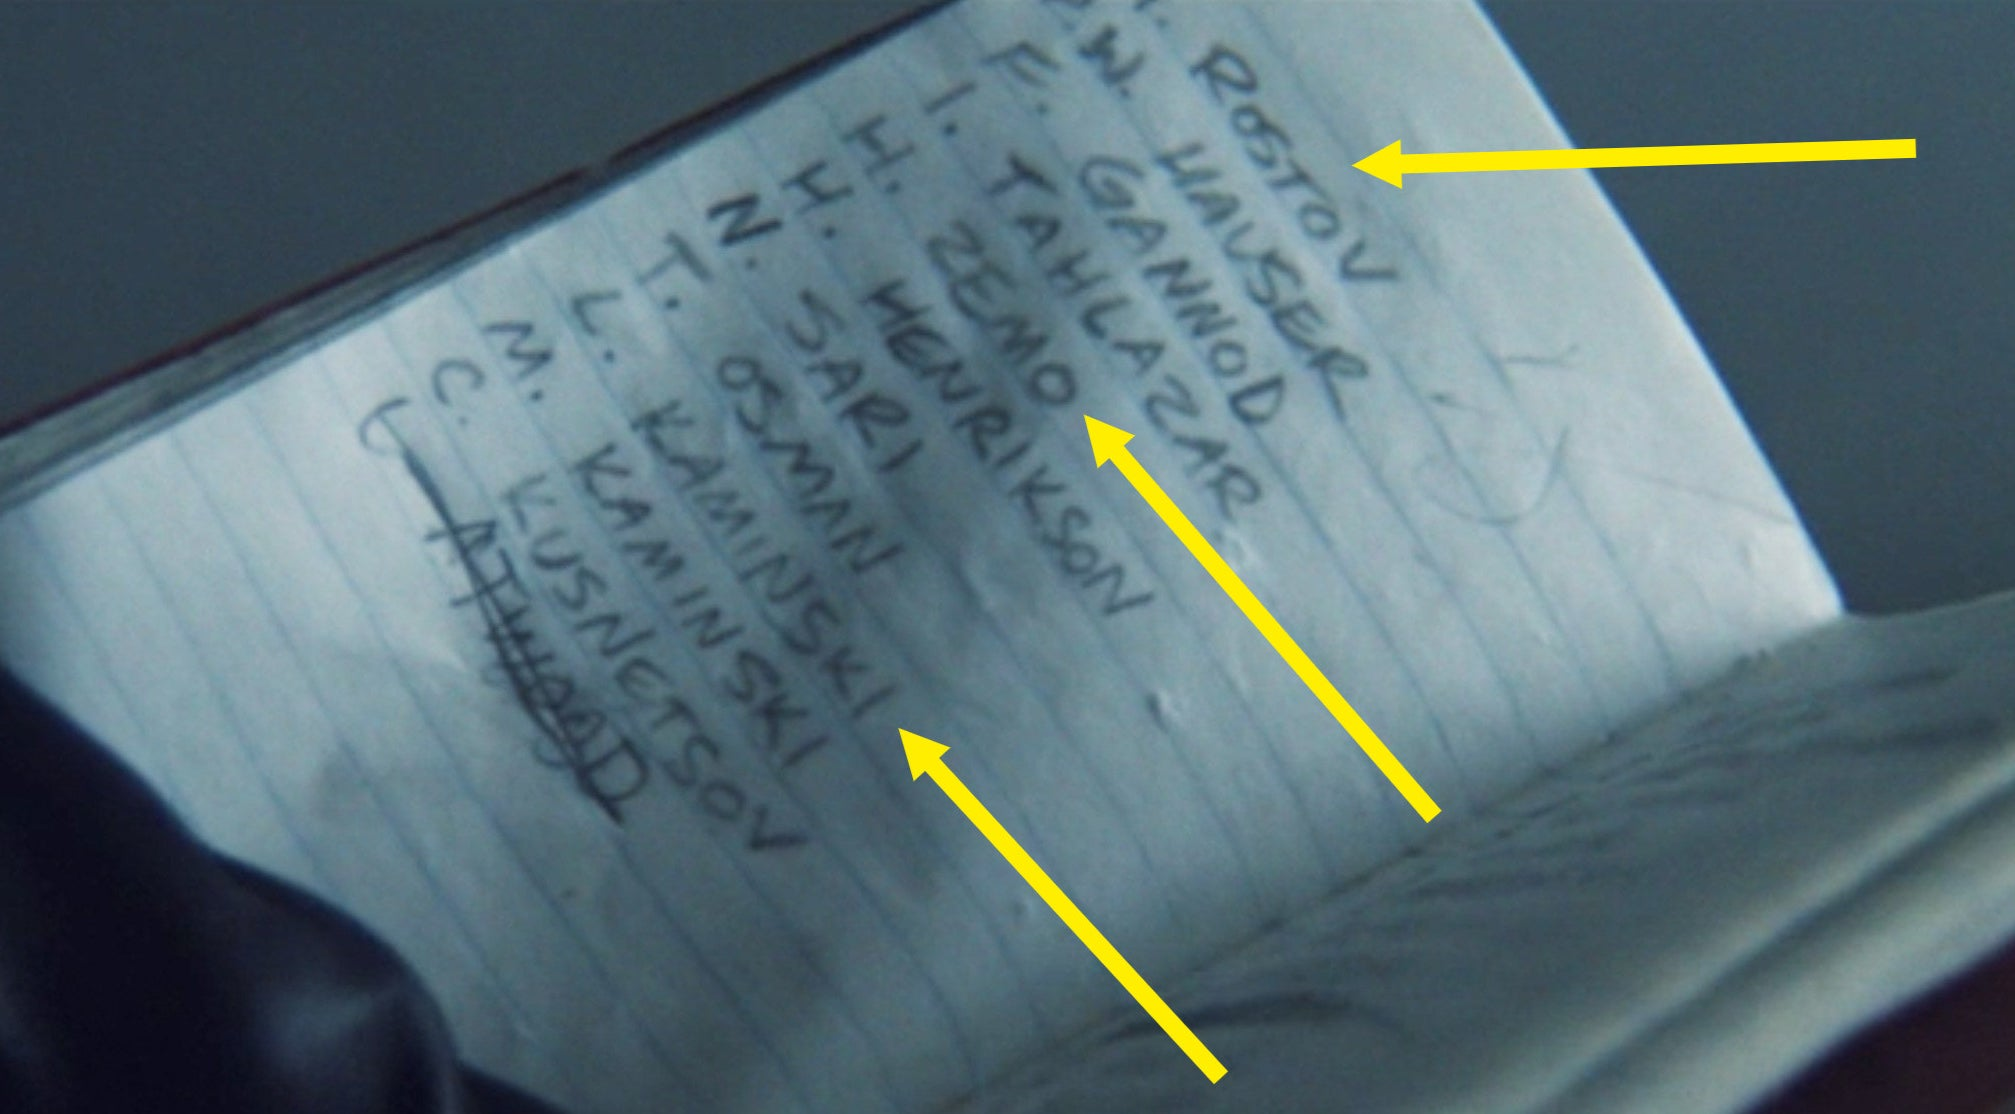 Bucky's notebook filled with names